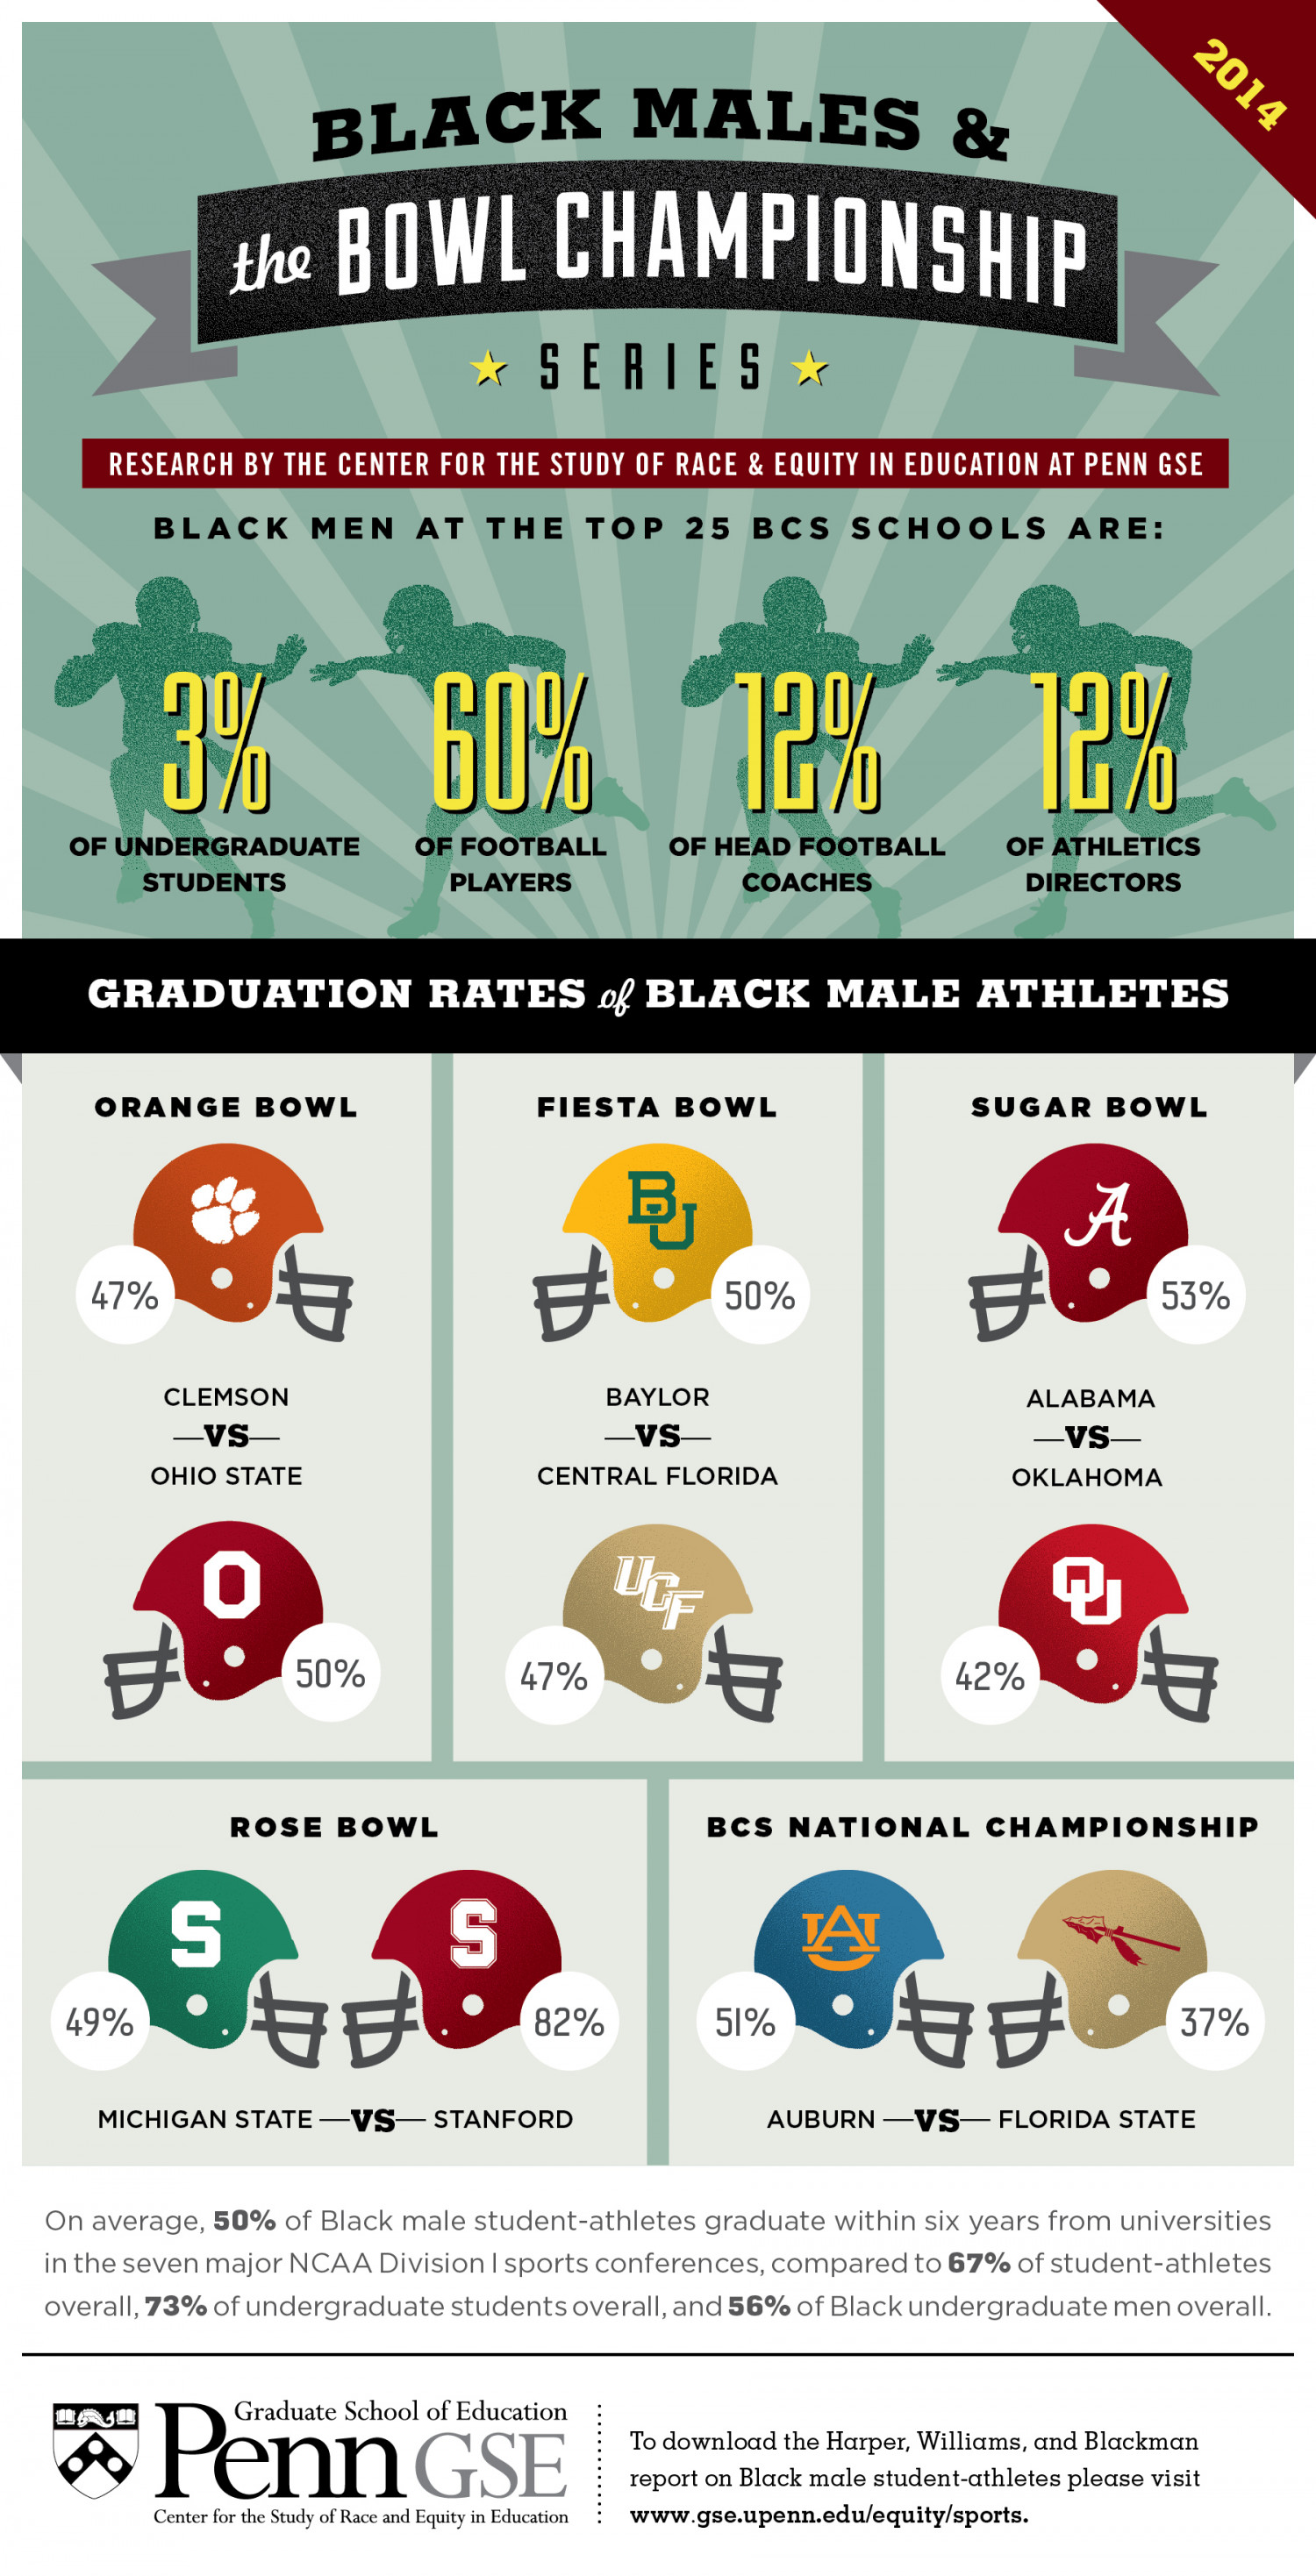 Black Male Student-Athletes and the 2014 Bowl Championship Series Infographic